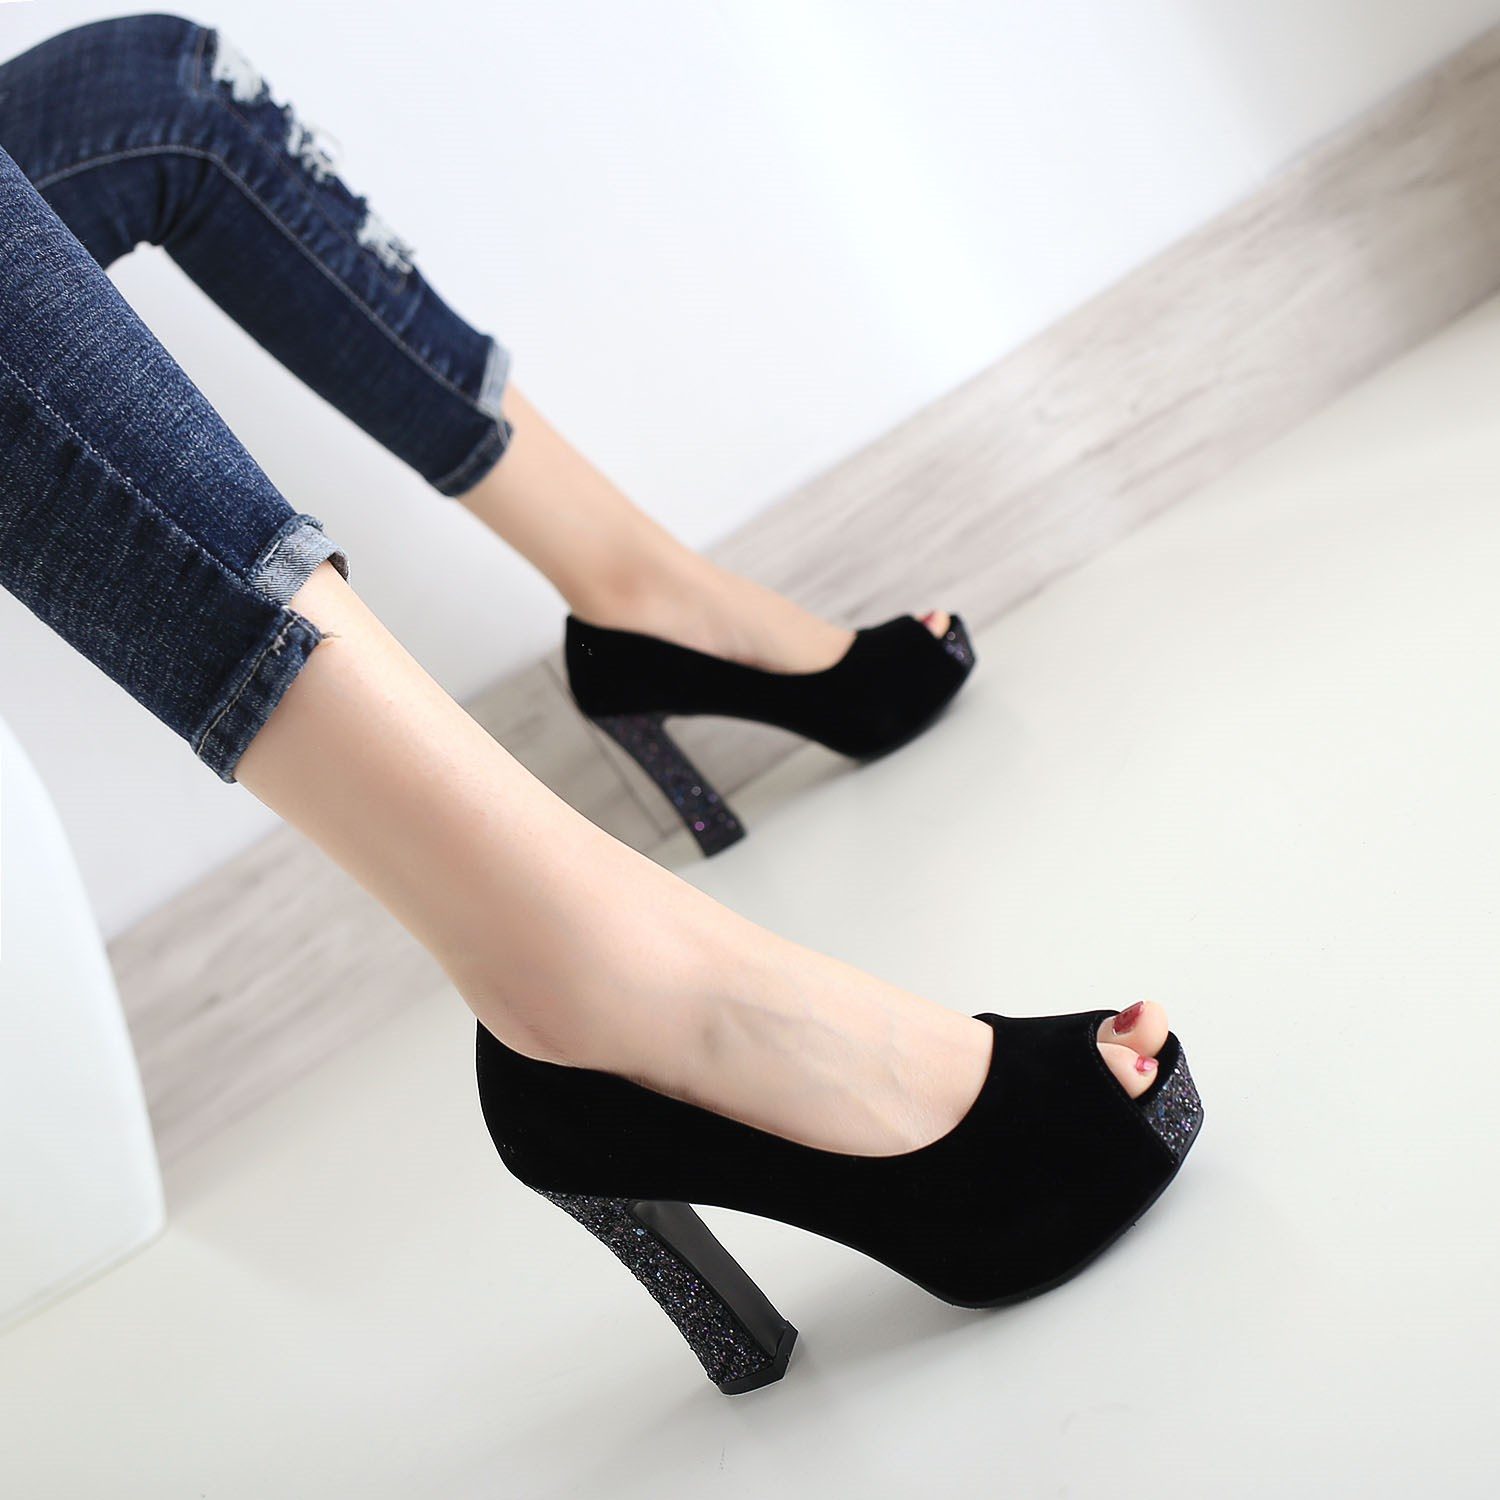 Fashion Black Suede super high heels 10cm fish mouth waterproof platform sexy thick heel shoes